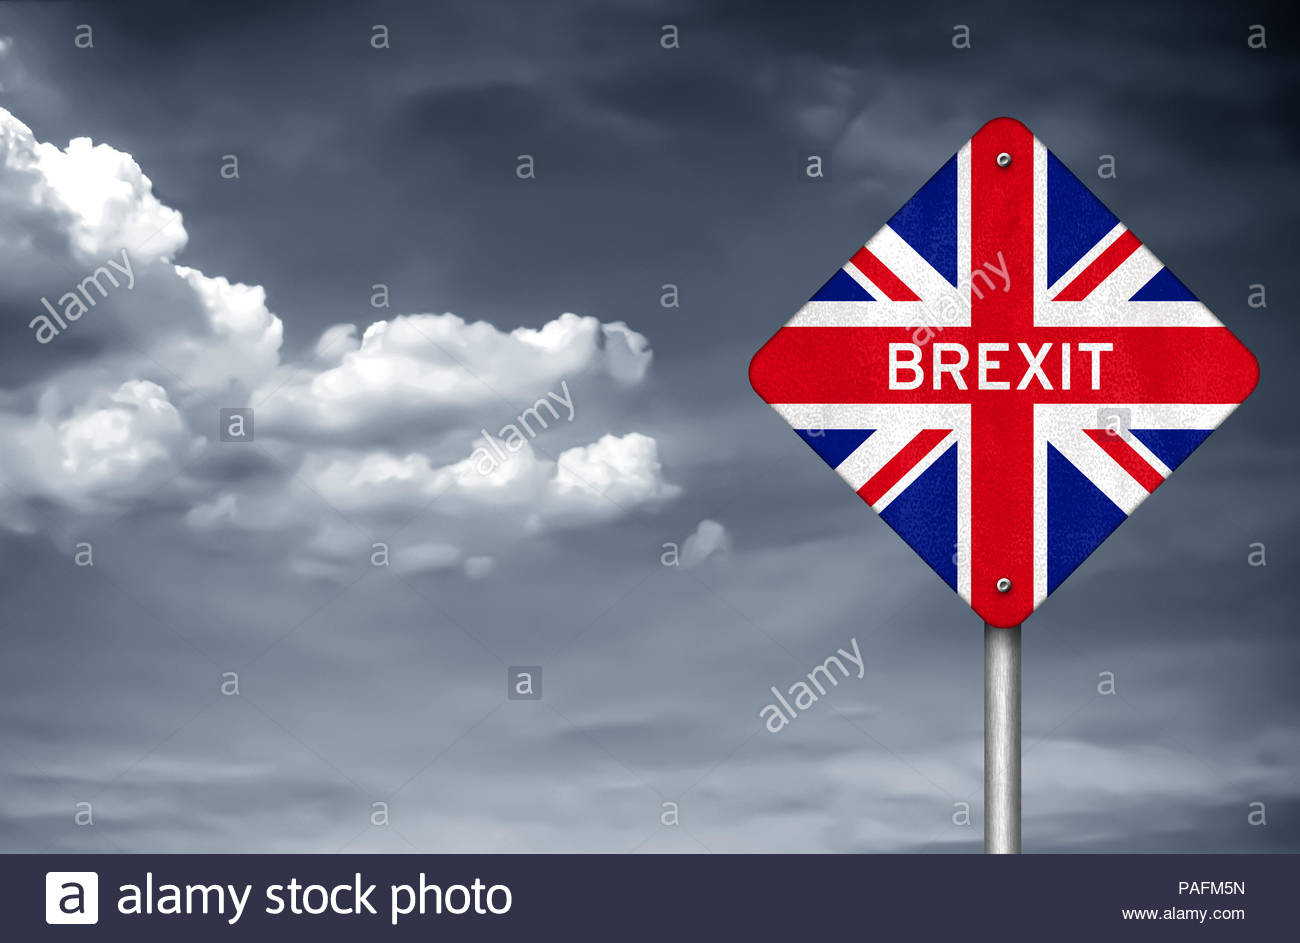 Brexit - withdrawal United Kingdom from the European Union - Stock Image